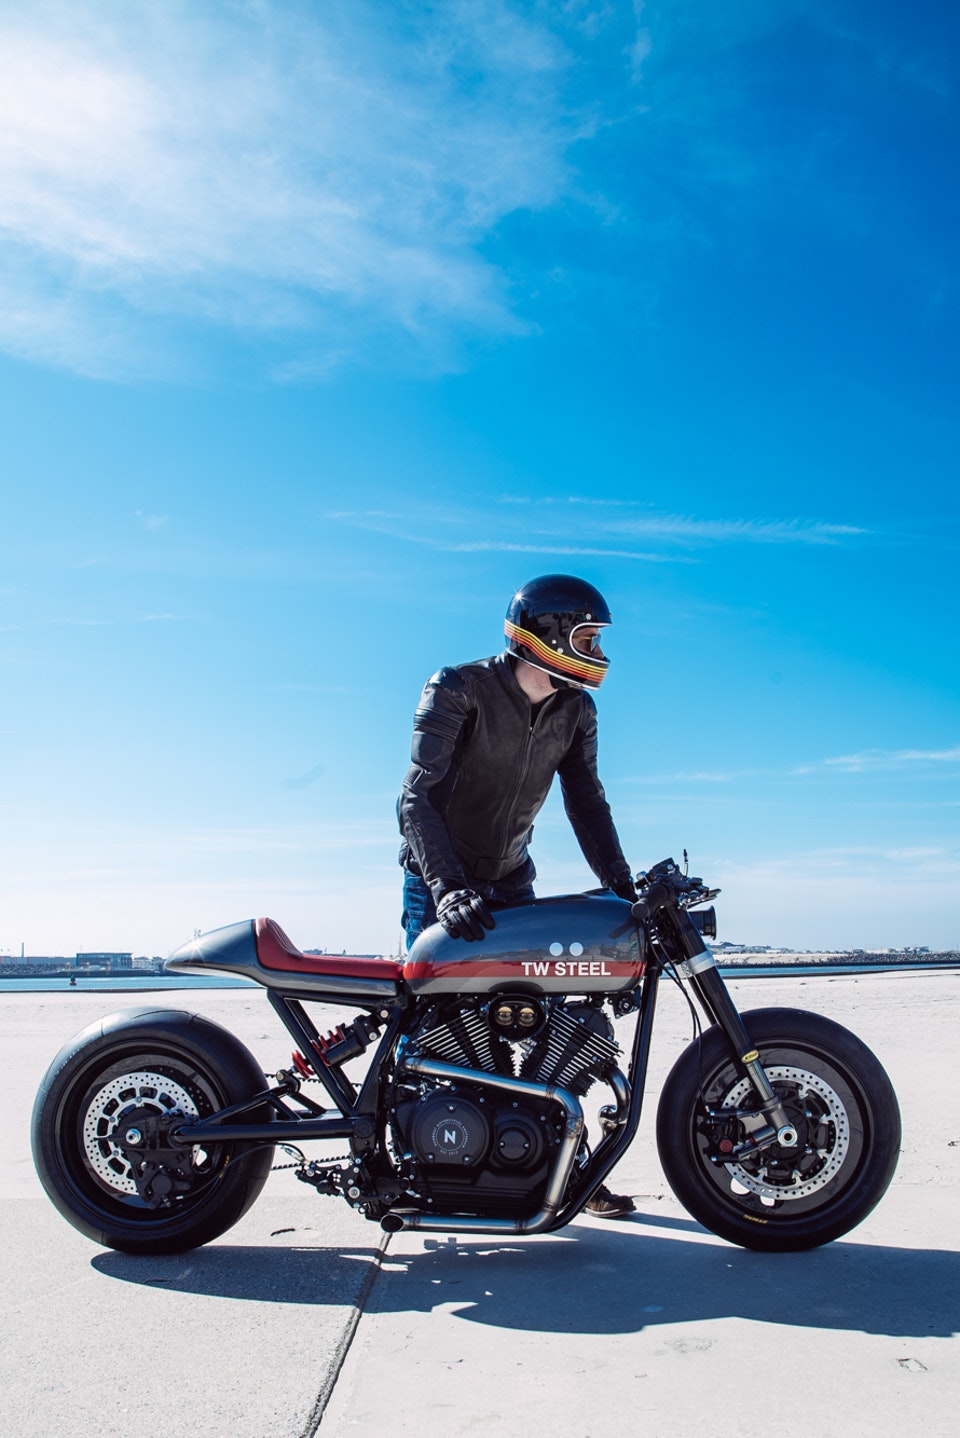 Son of Time X Numbnut Motorcycles 7f6a440335e8d12a